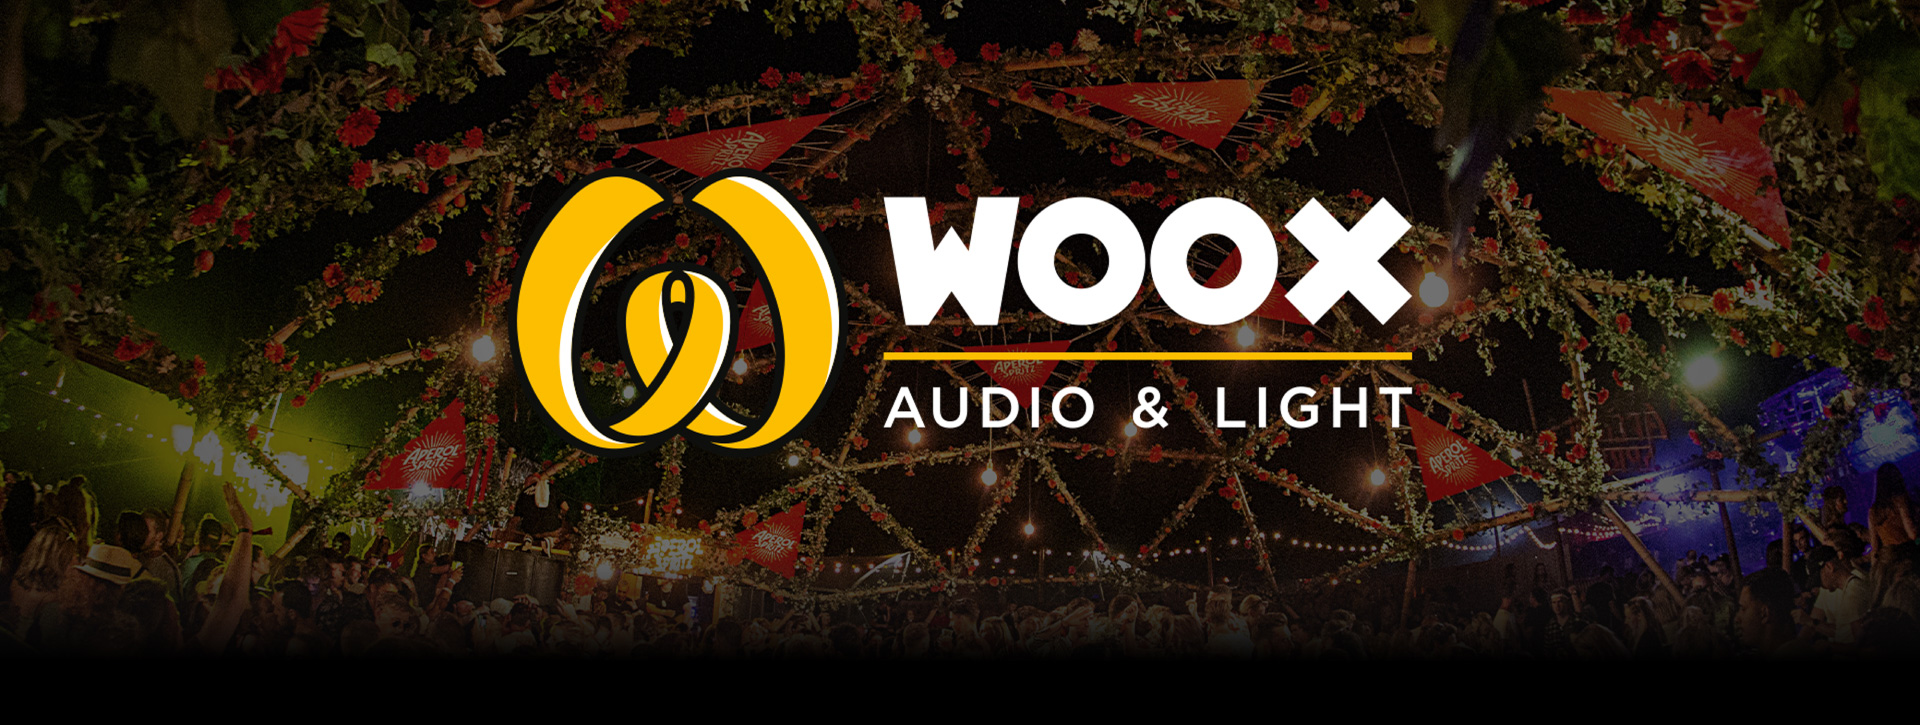 Woox Audio & Light verhuur